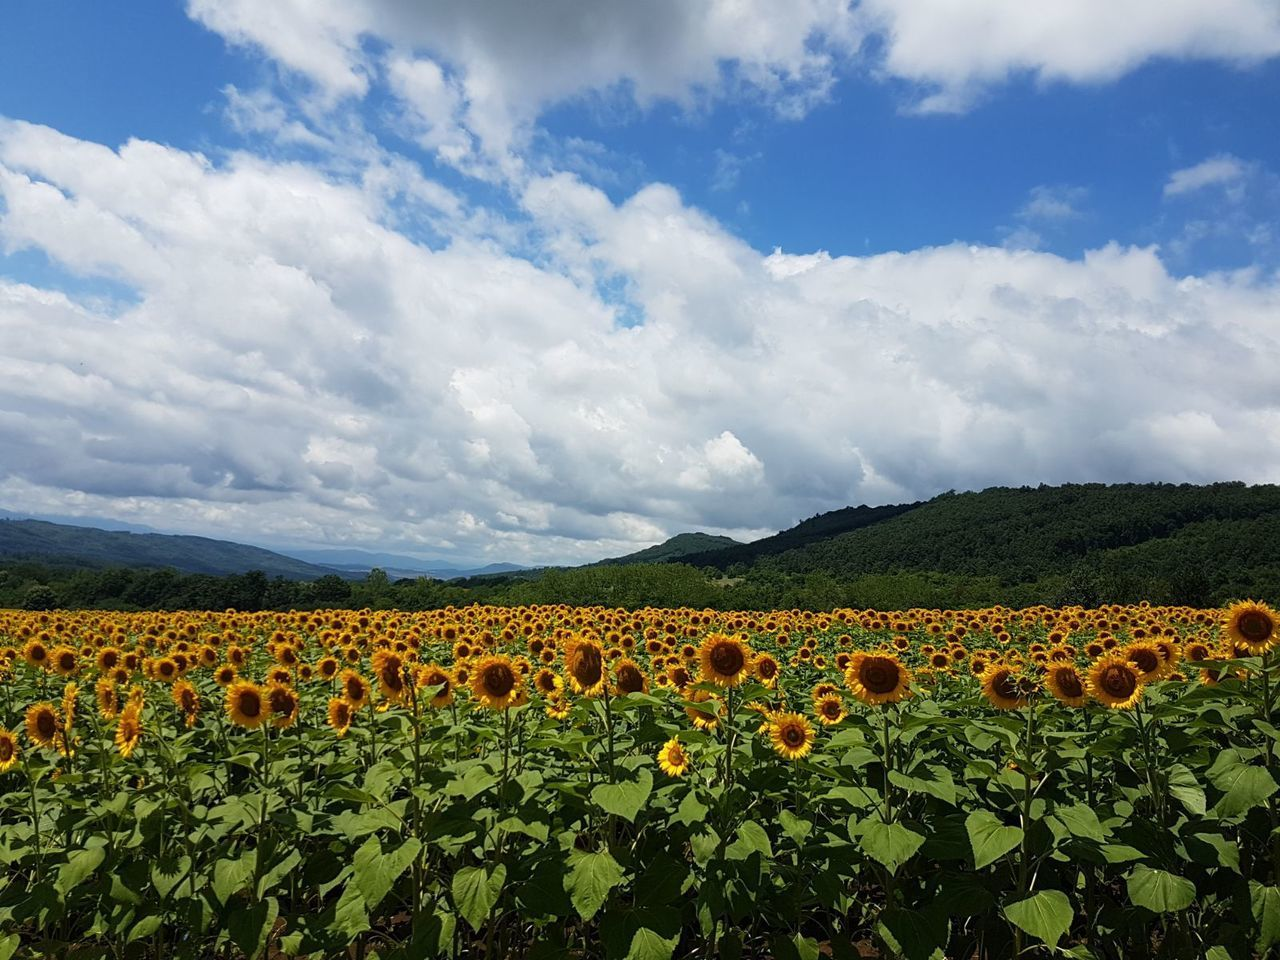 Cloud - Sky Field Landscape Sunflowers🌻 Sunfllowers Nature Agriculture Farm Crop  Rural Scene Nature Beauty In Nature Day Flower Mountain Plant Outdoors Sky Cultivated Scenics Growth No People Freshness